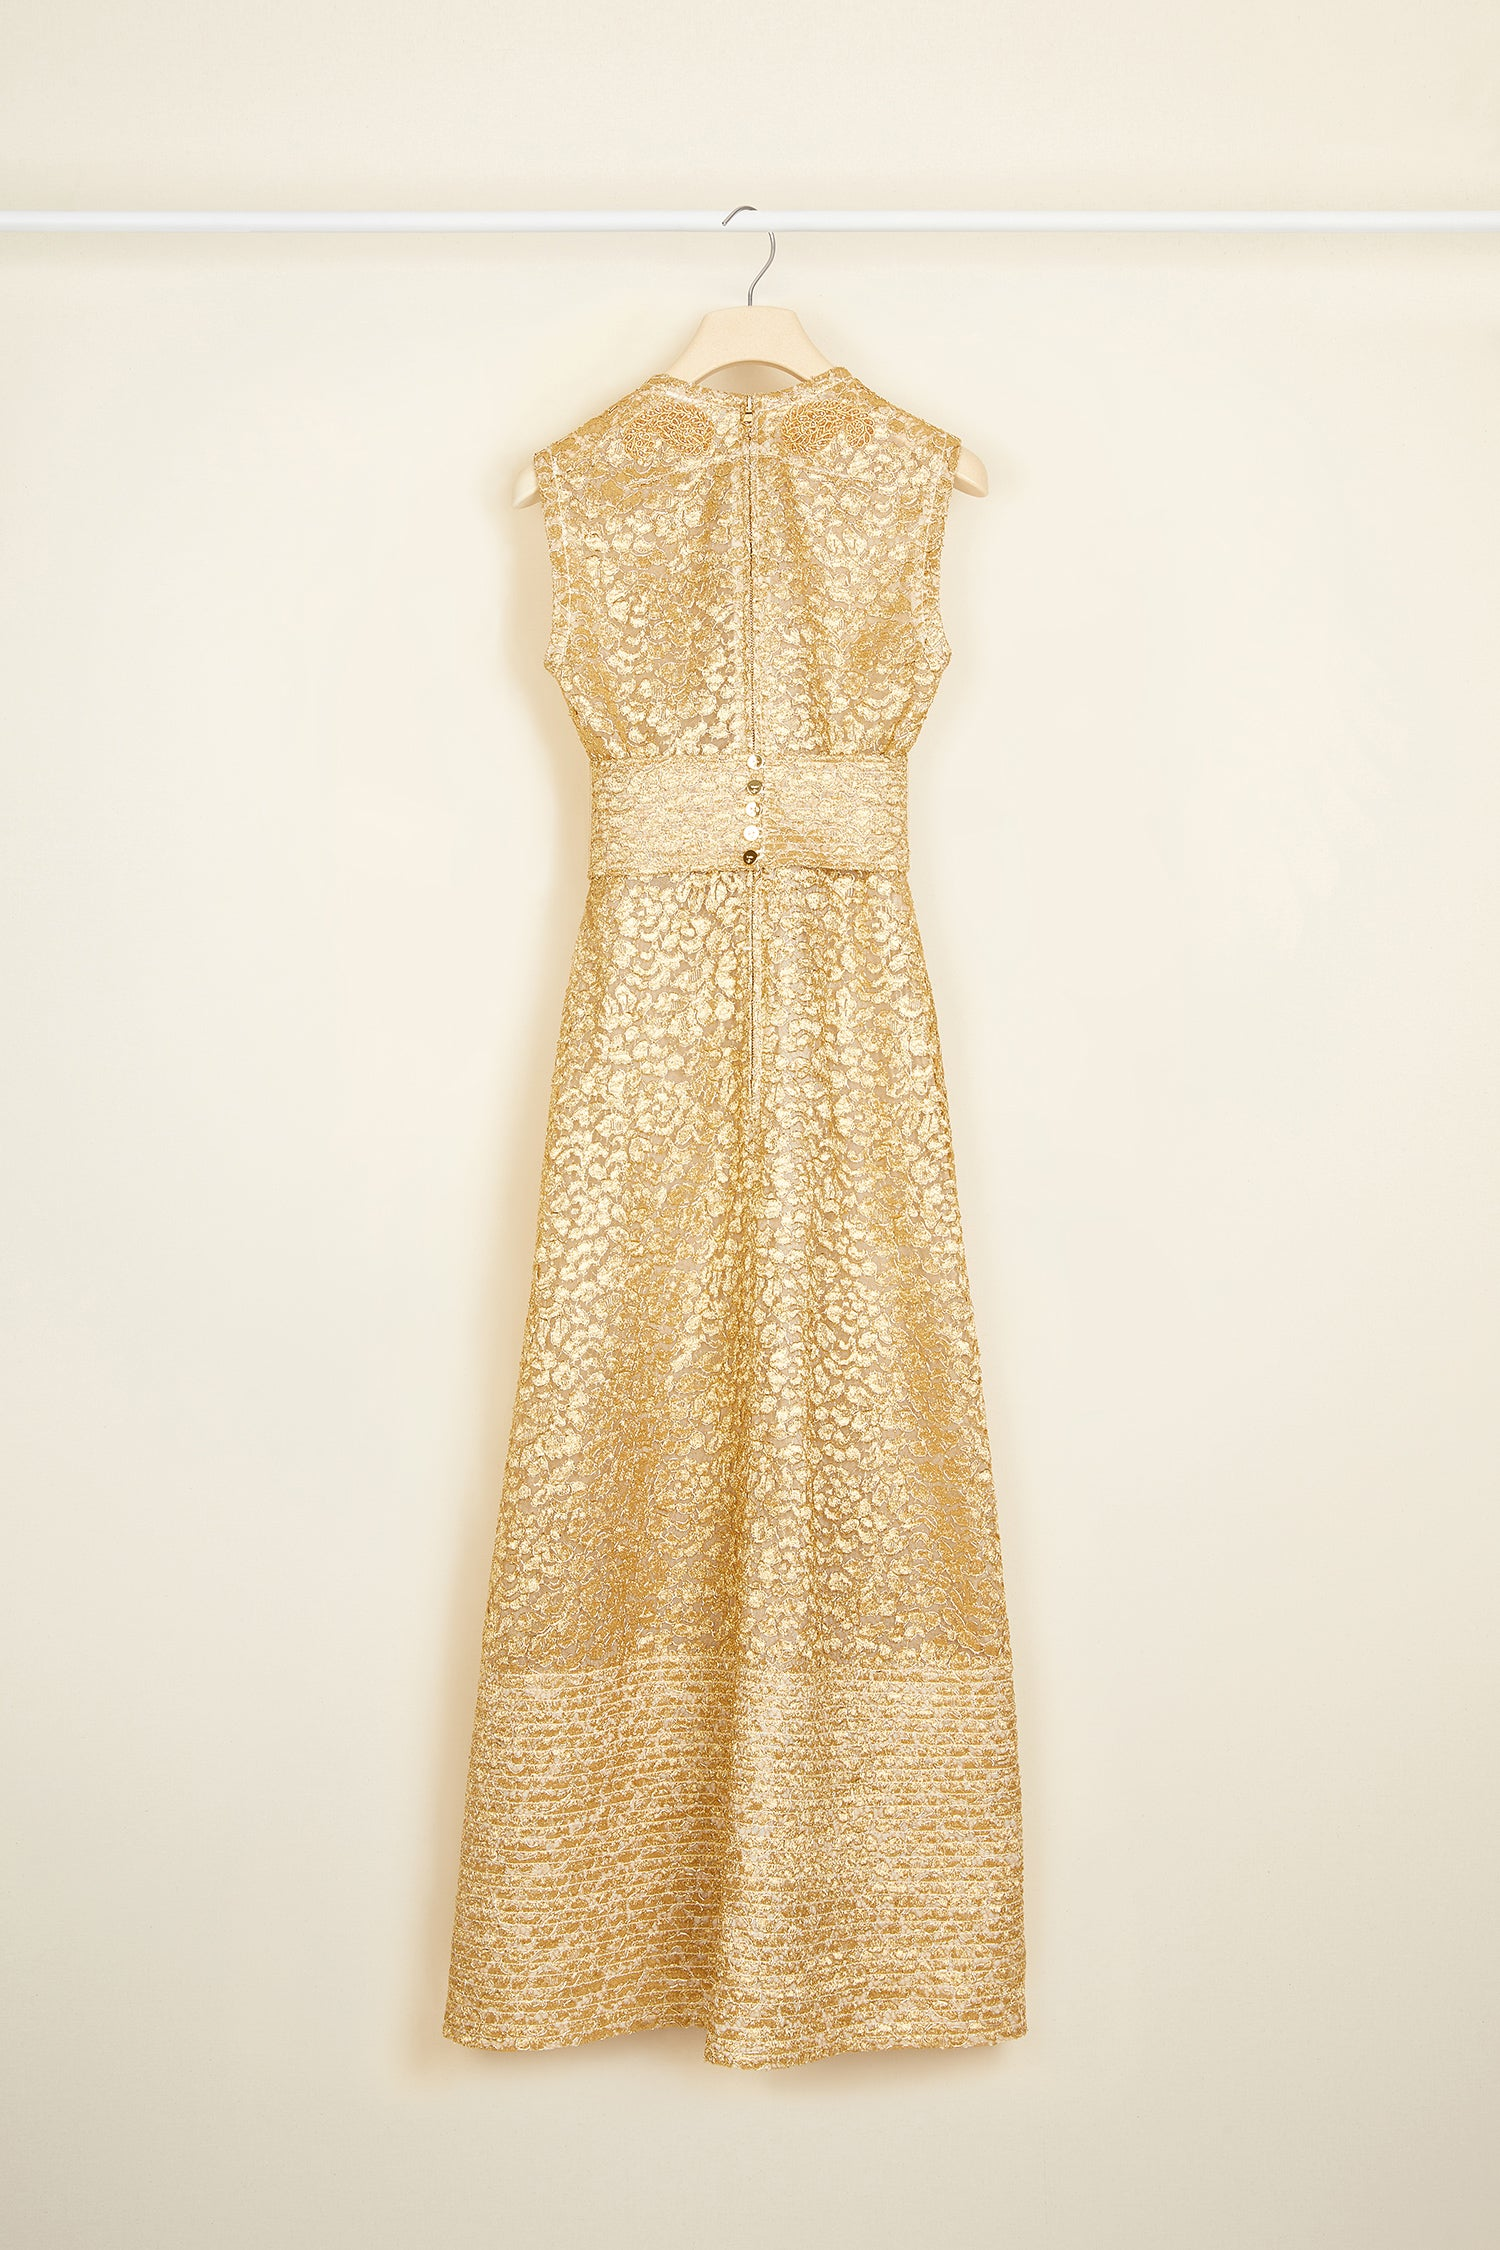 Patou - Gold lace dress with embroidery